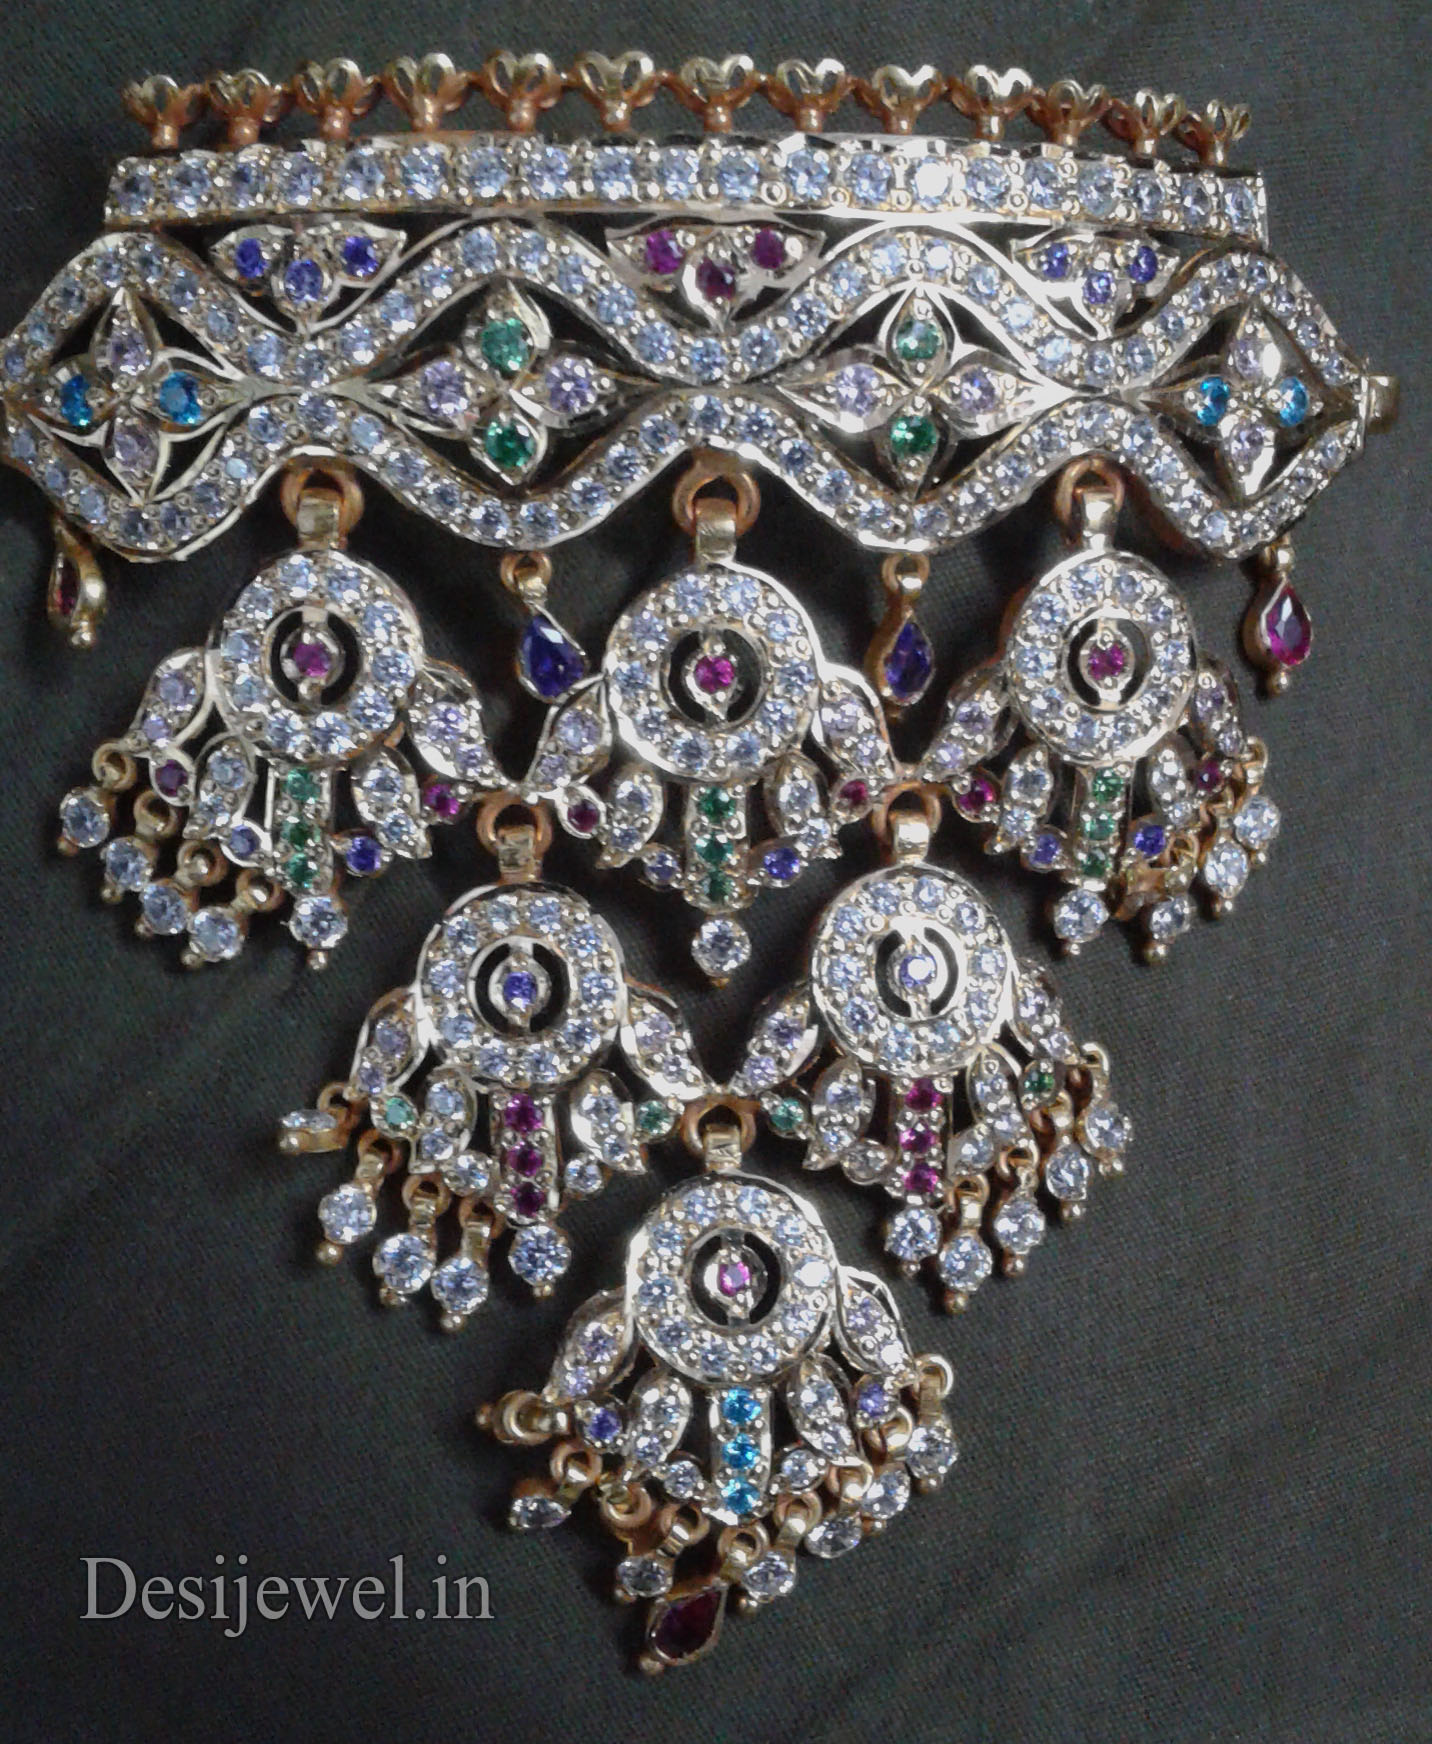 Rajasthani Gold Desi Mini Aad Jewellery  in Jodhpur with weight of 25-28 GM